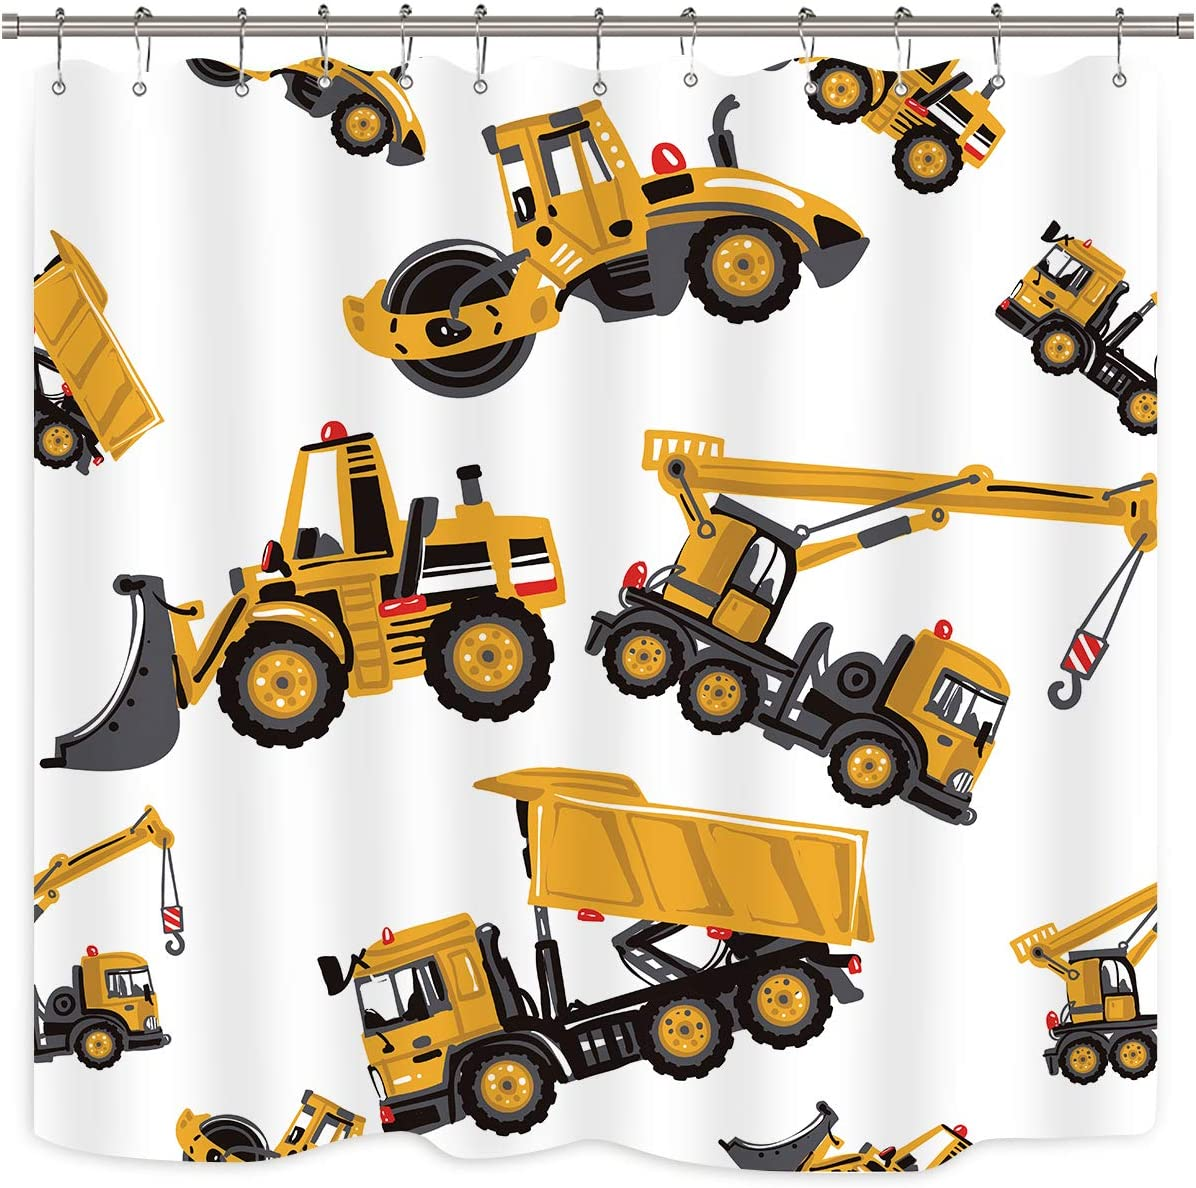 Riyidecor Construction Truck Shower Curtain Boys Excavator Cartoon Yellow Kids Machinery Bathroom Home Decor Set Waterproof Polyester 72Wx72H Inch 12 Pack Plastic Hooks